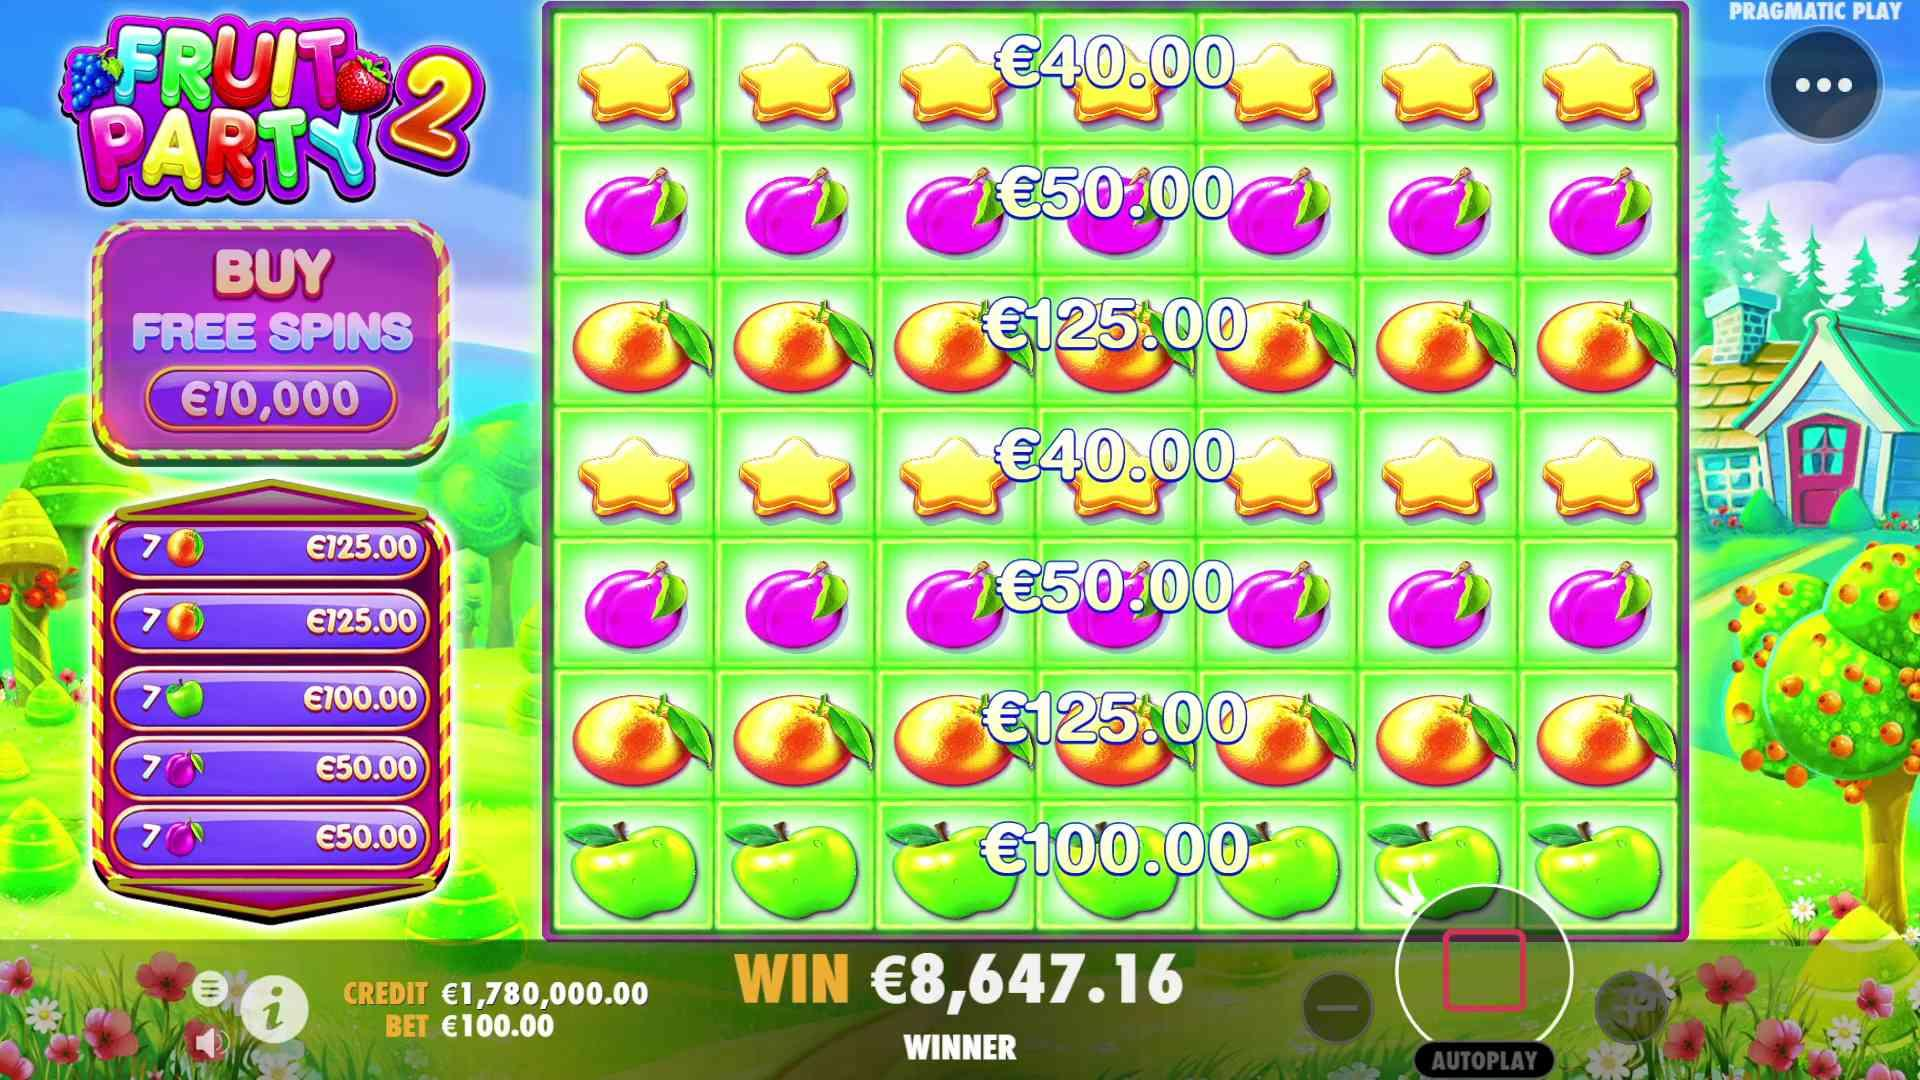 Fruit Party 2 Slot The Base Game